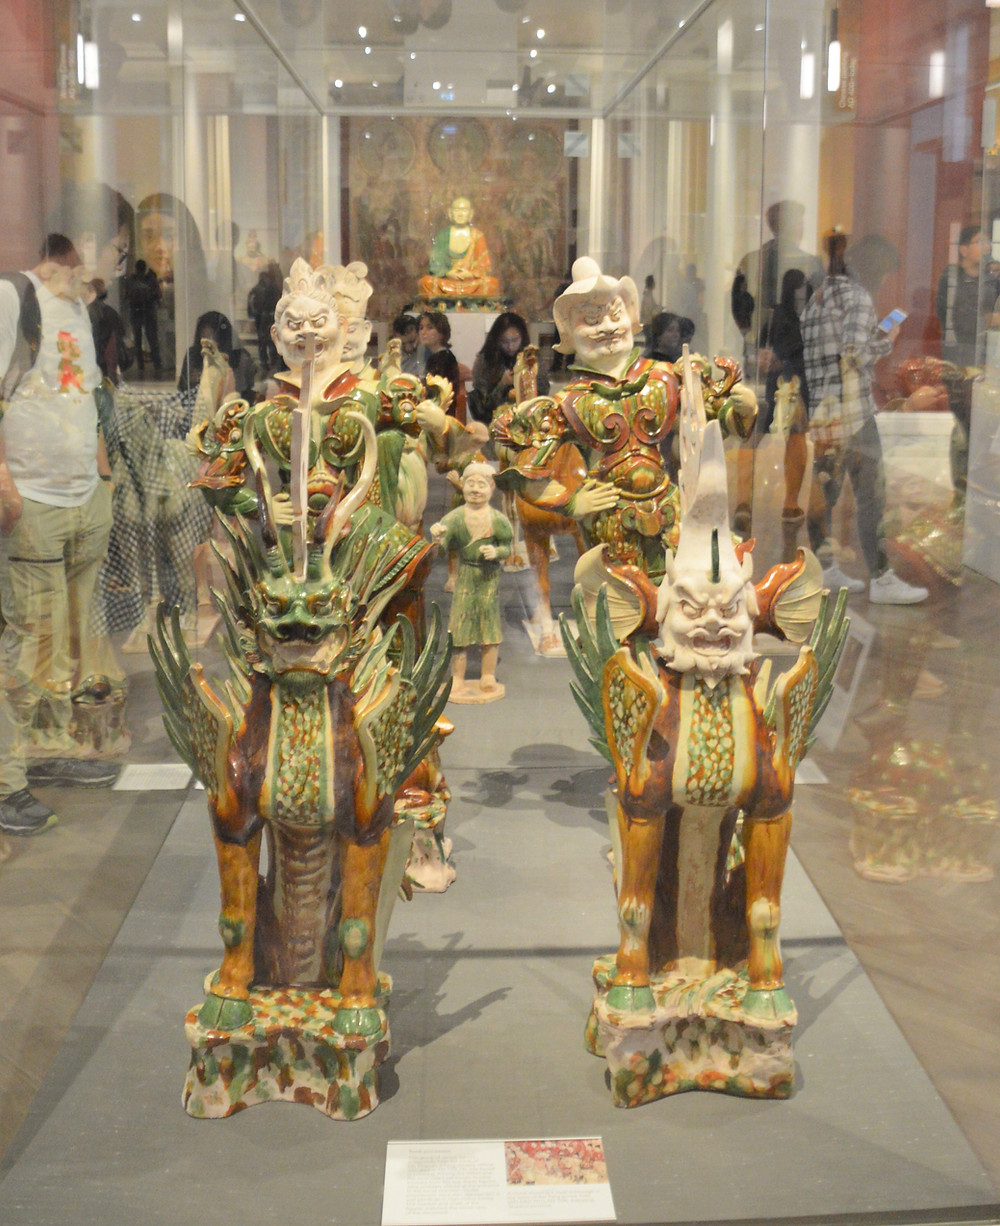 On display in The British Museum figurines below were buried in the tomb of the Tang general Liu Tingxun, who died at the age of 72 in 728 AD